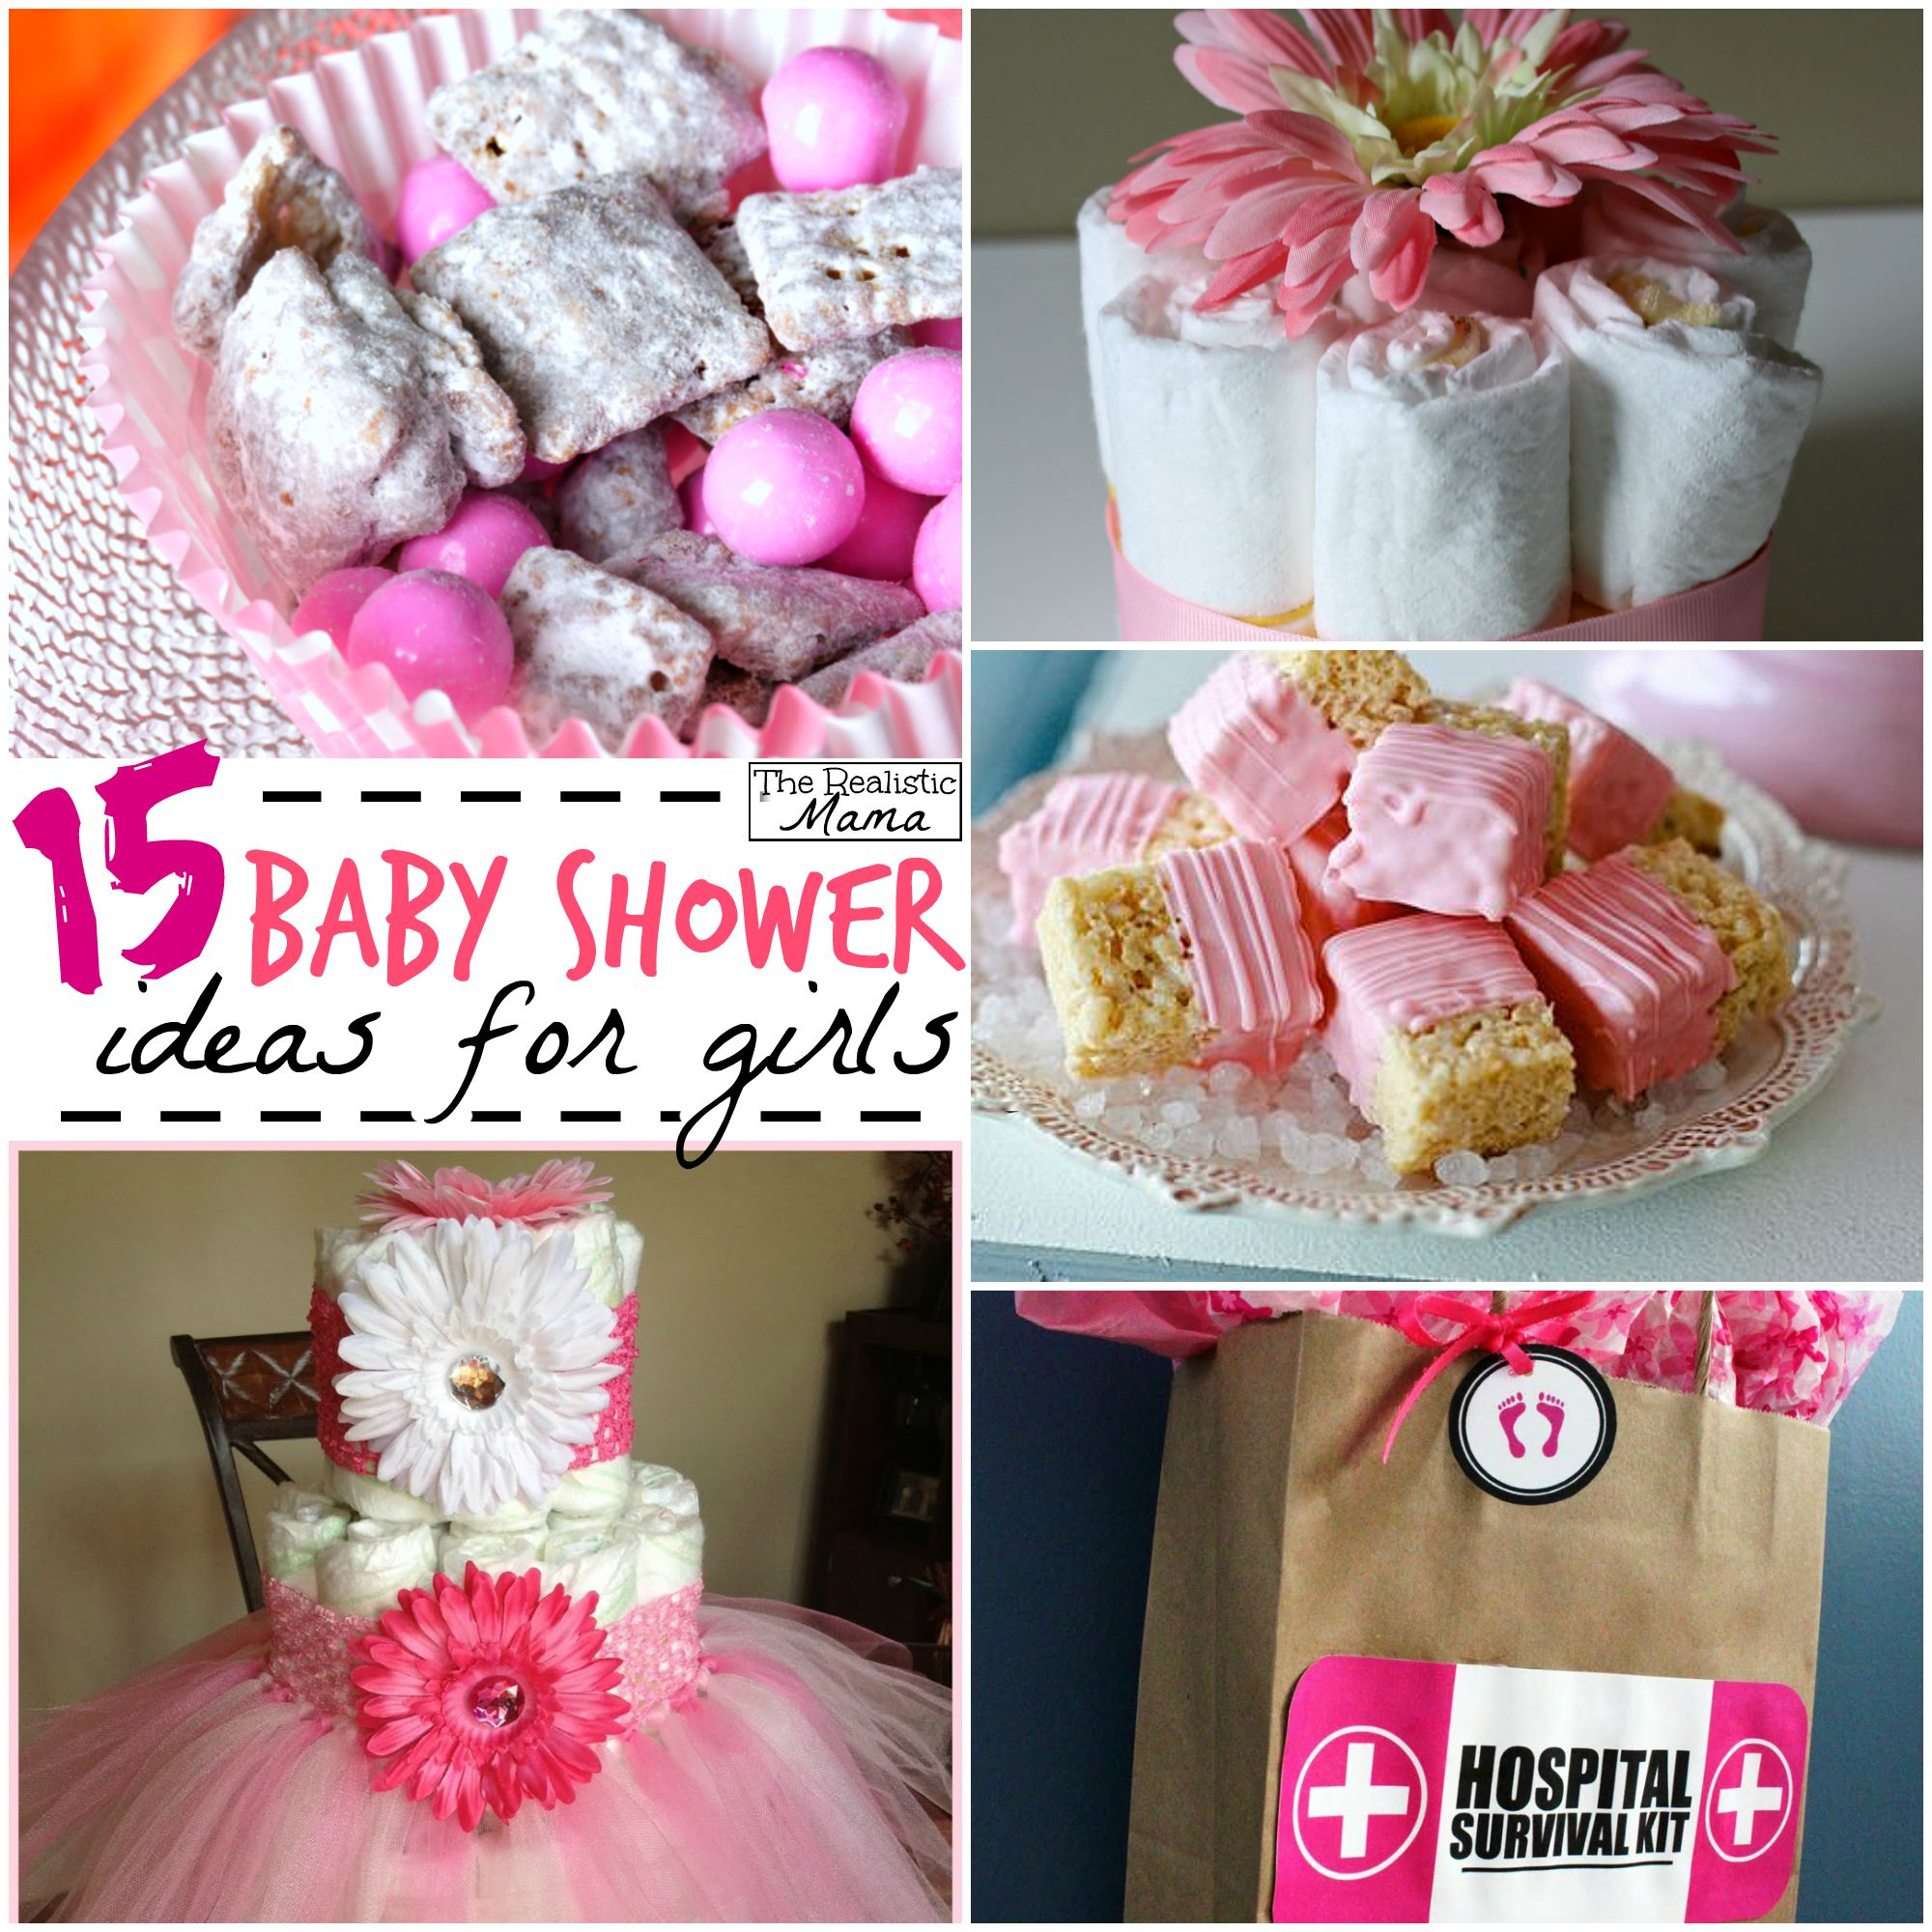 Decoration Ideas Baby Shower Girl 15 Baby Shower Ideas For Girls The Realistic Mama